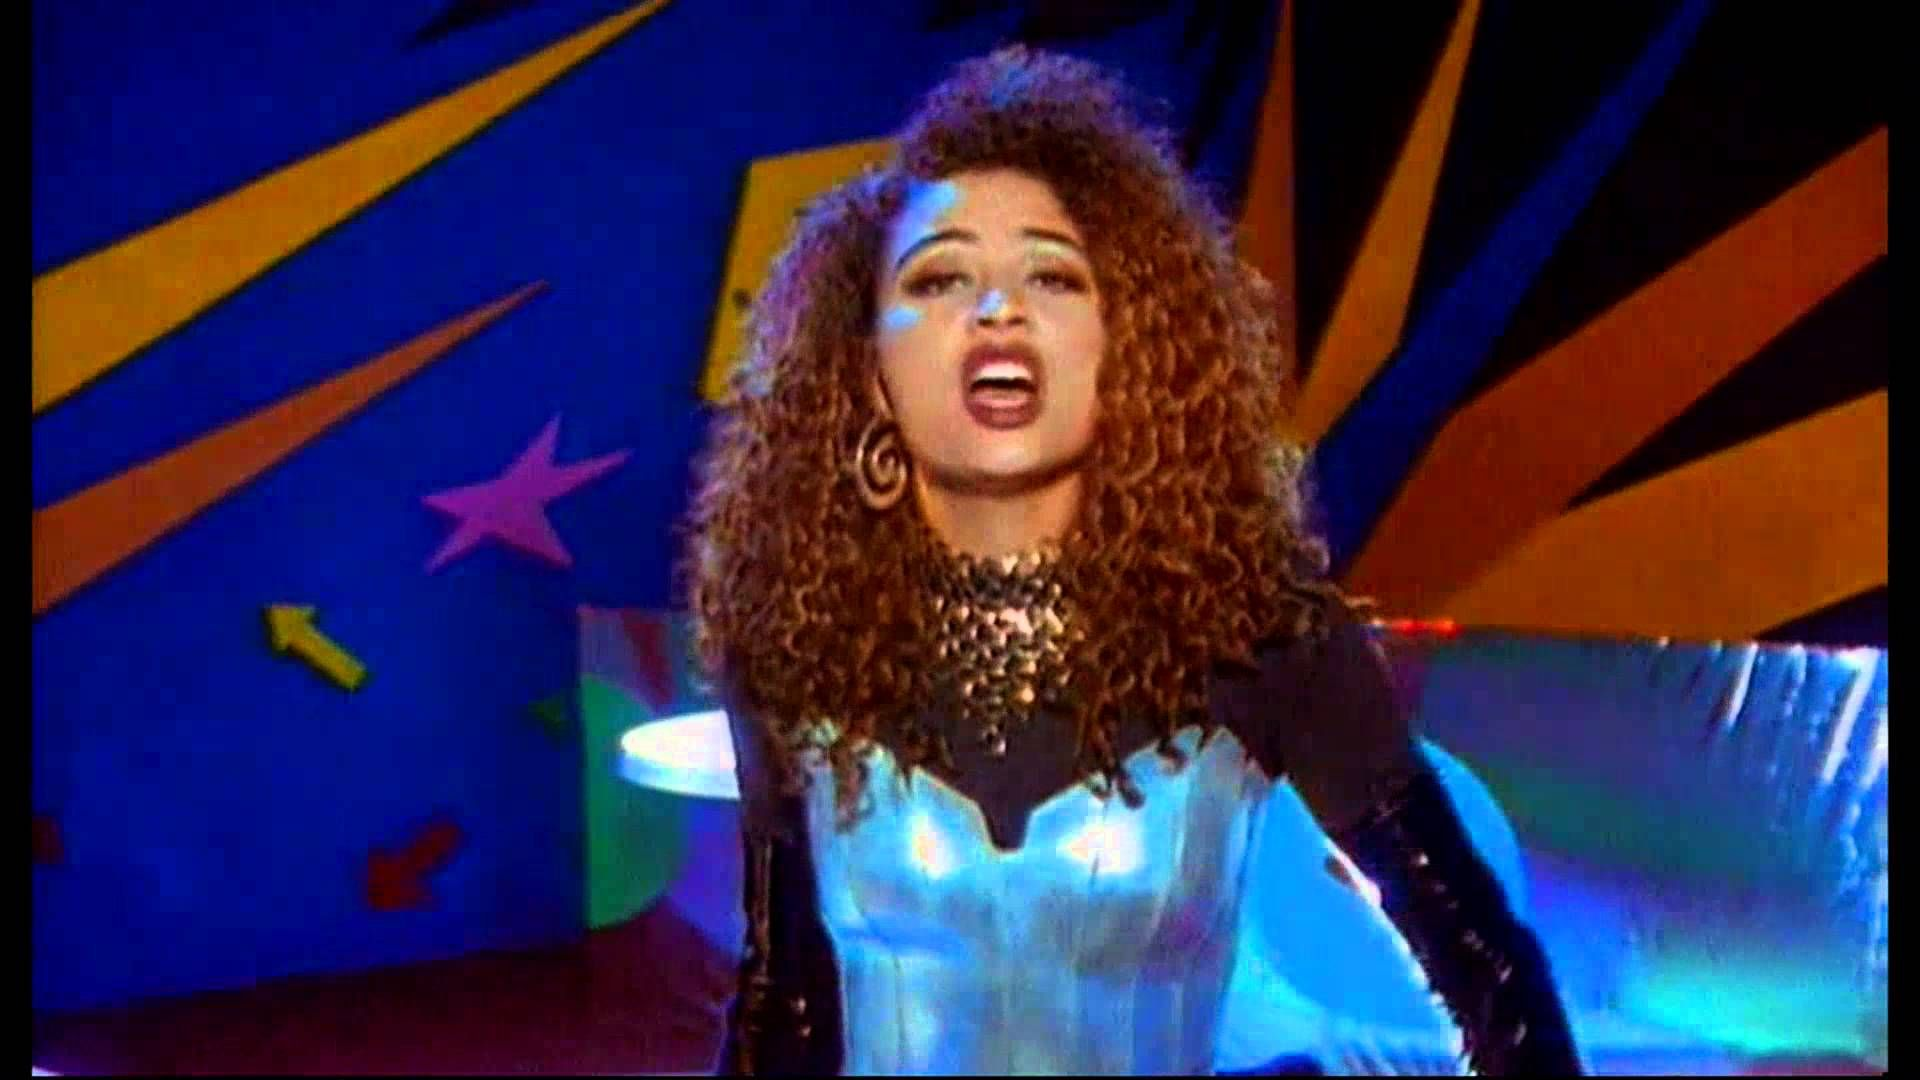 2 Unlimited No Limit 1993 Music 90s 1993 Fashion Hair 80s Arcade Dance 2 Unlimited 90s Music Artists Electronic Dance Music